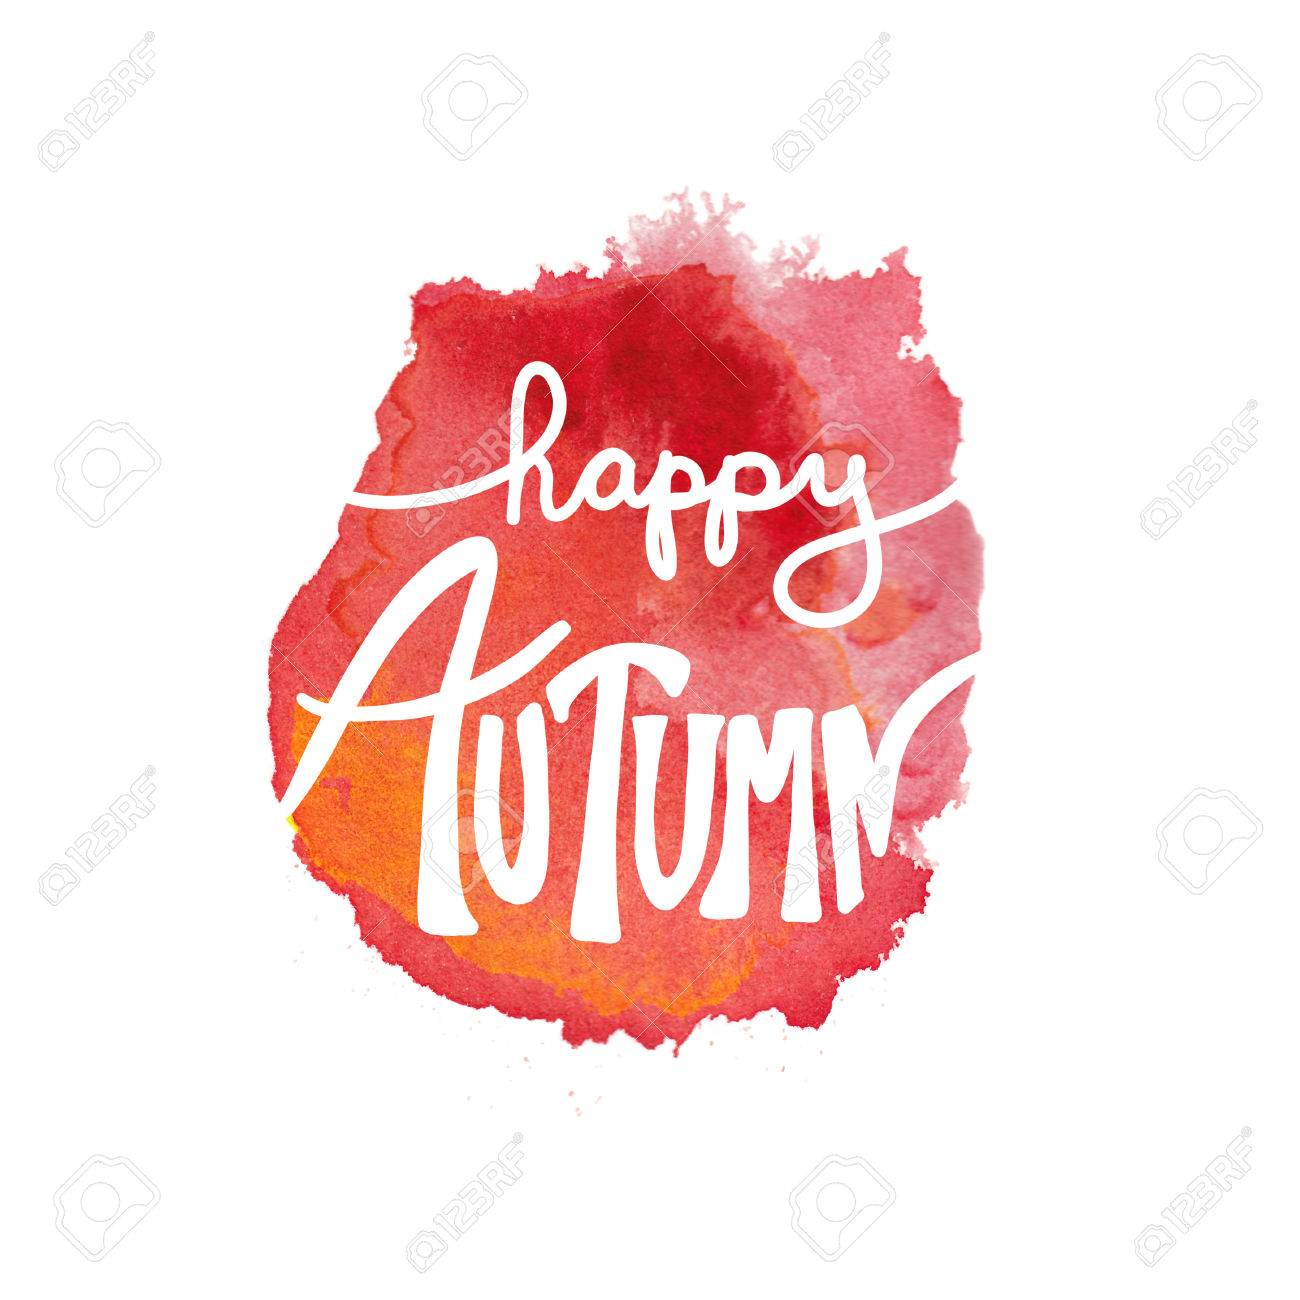 Stock illustration 3d red text quot yes quot stock illustration royalty - Happy Autumn Typography Quote Or Greeting On Hand Painted Watercolor Blot Or Blotch In Artsy Design